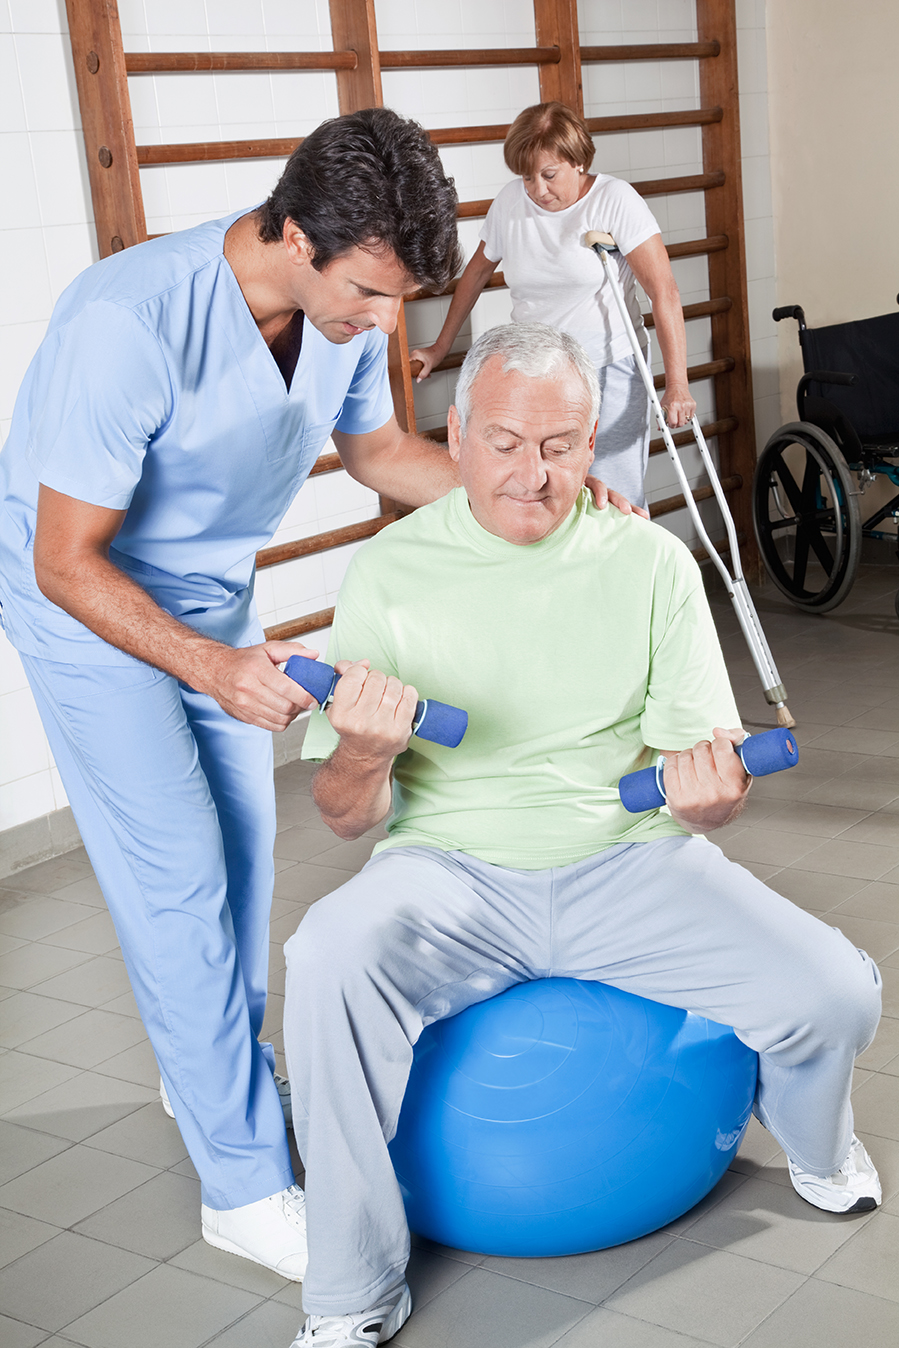 bigstock-Male-Physical-therapist-helpin-34326272